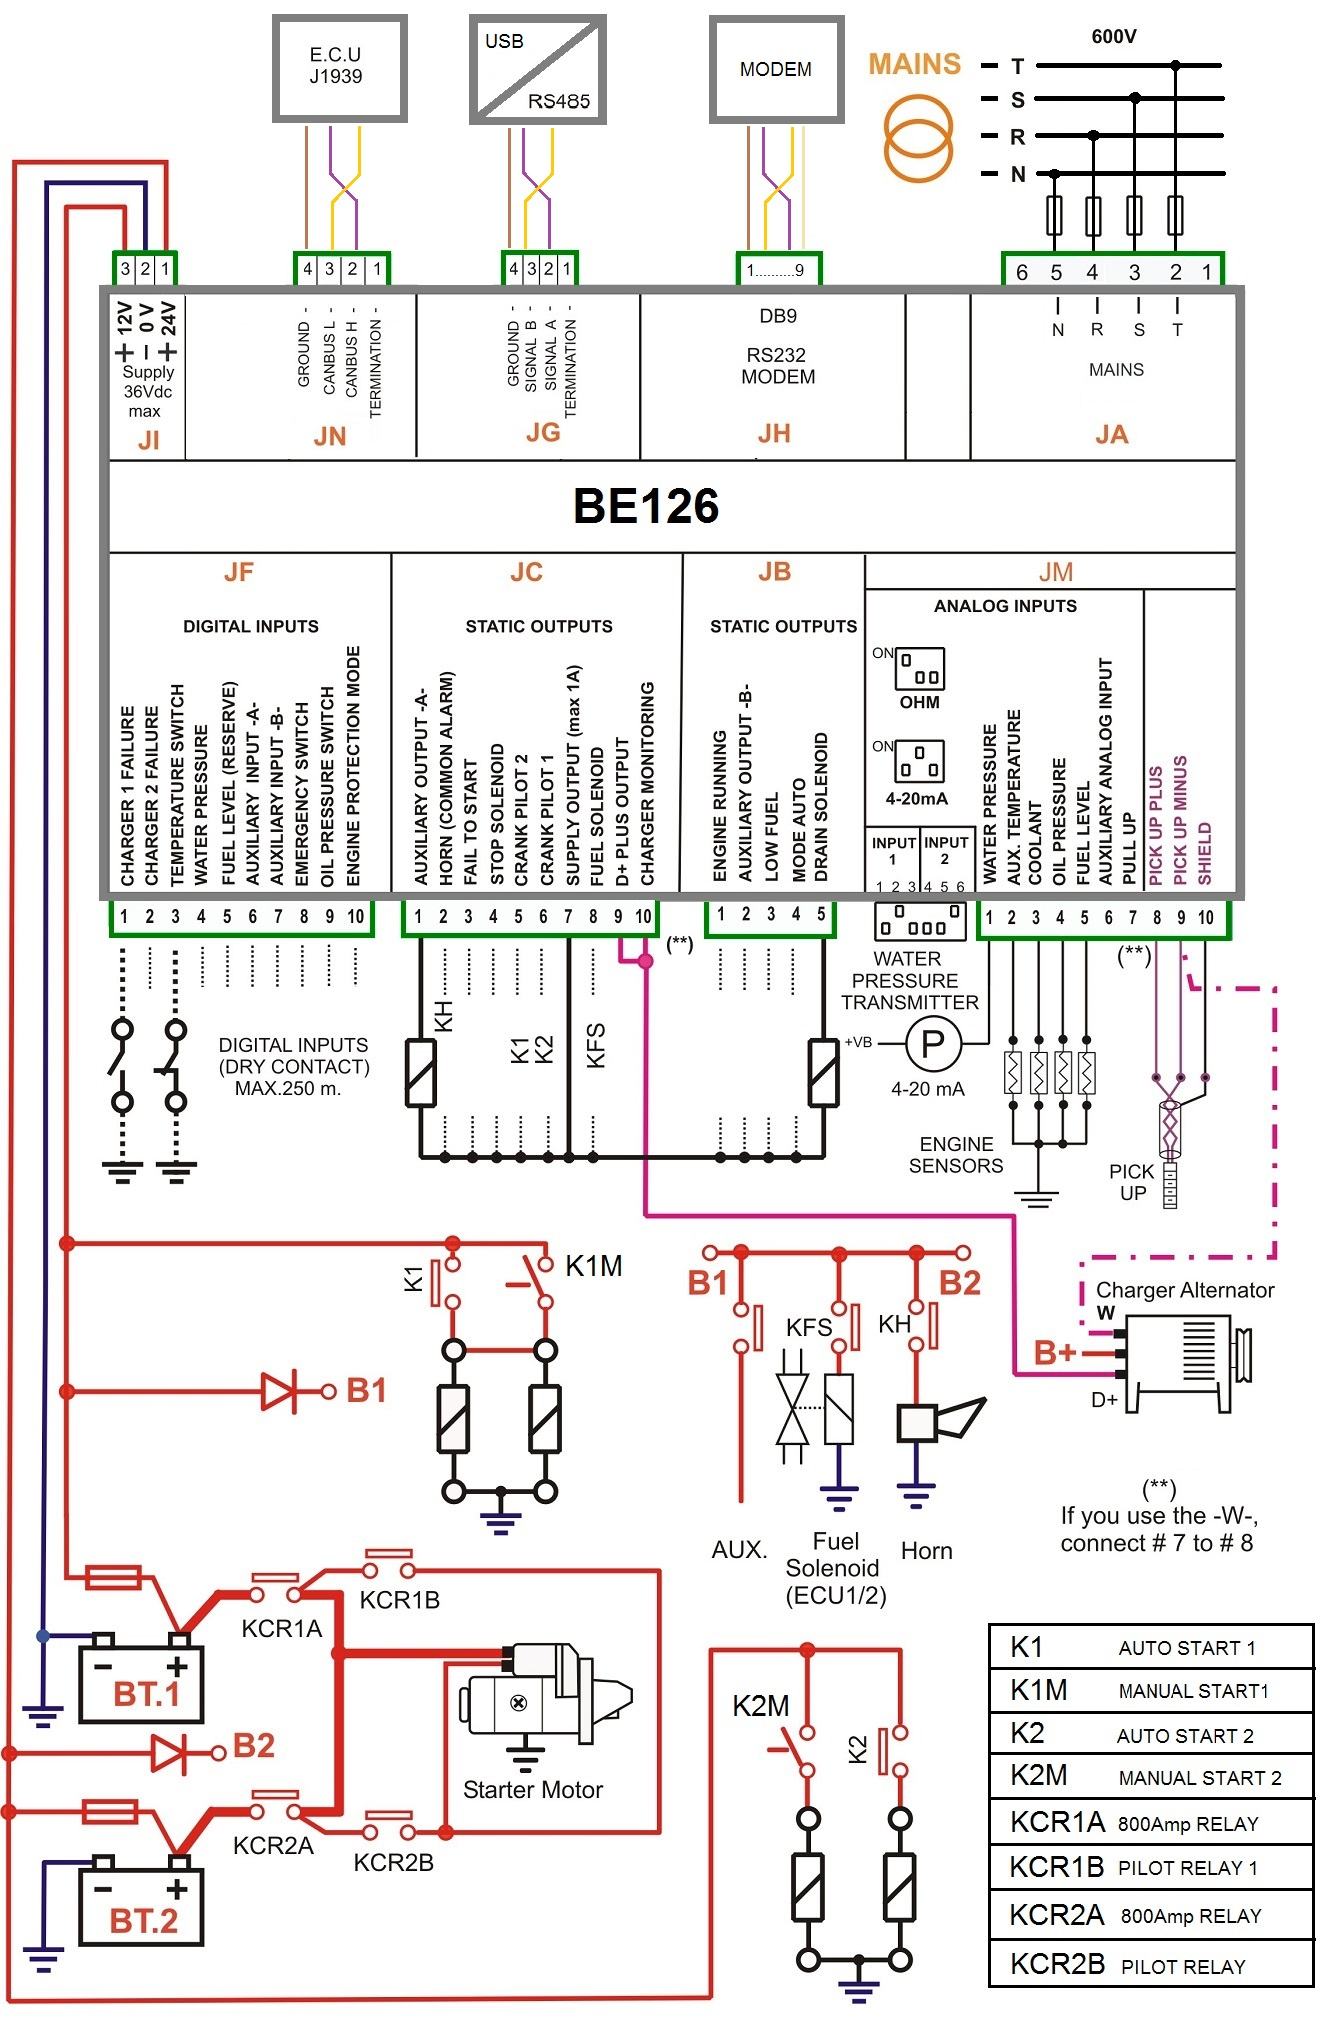 NFPA20 fire pump controller wiring diagram fire pump controller wiring diagram genset controller  at gsmx.co